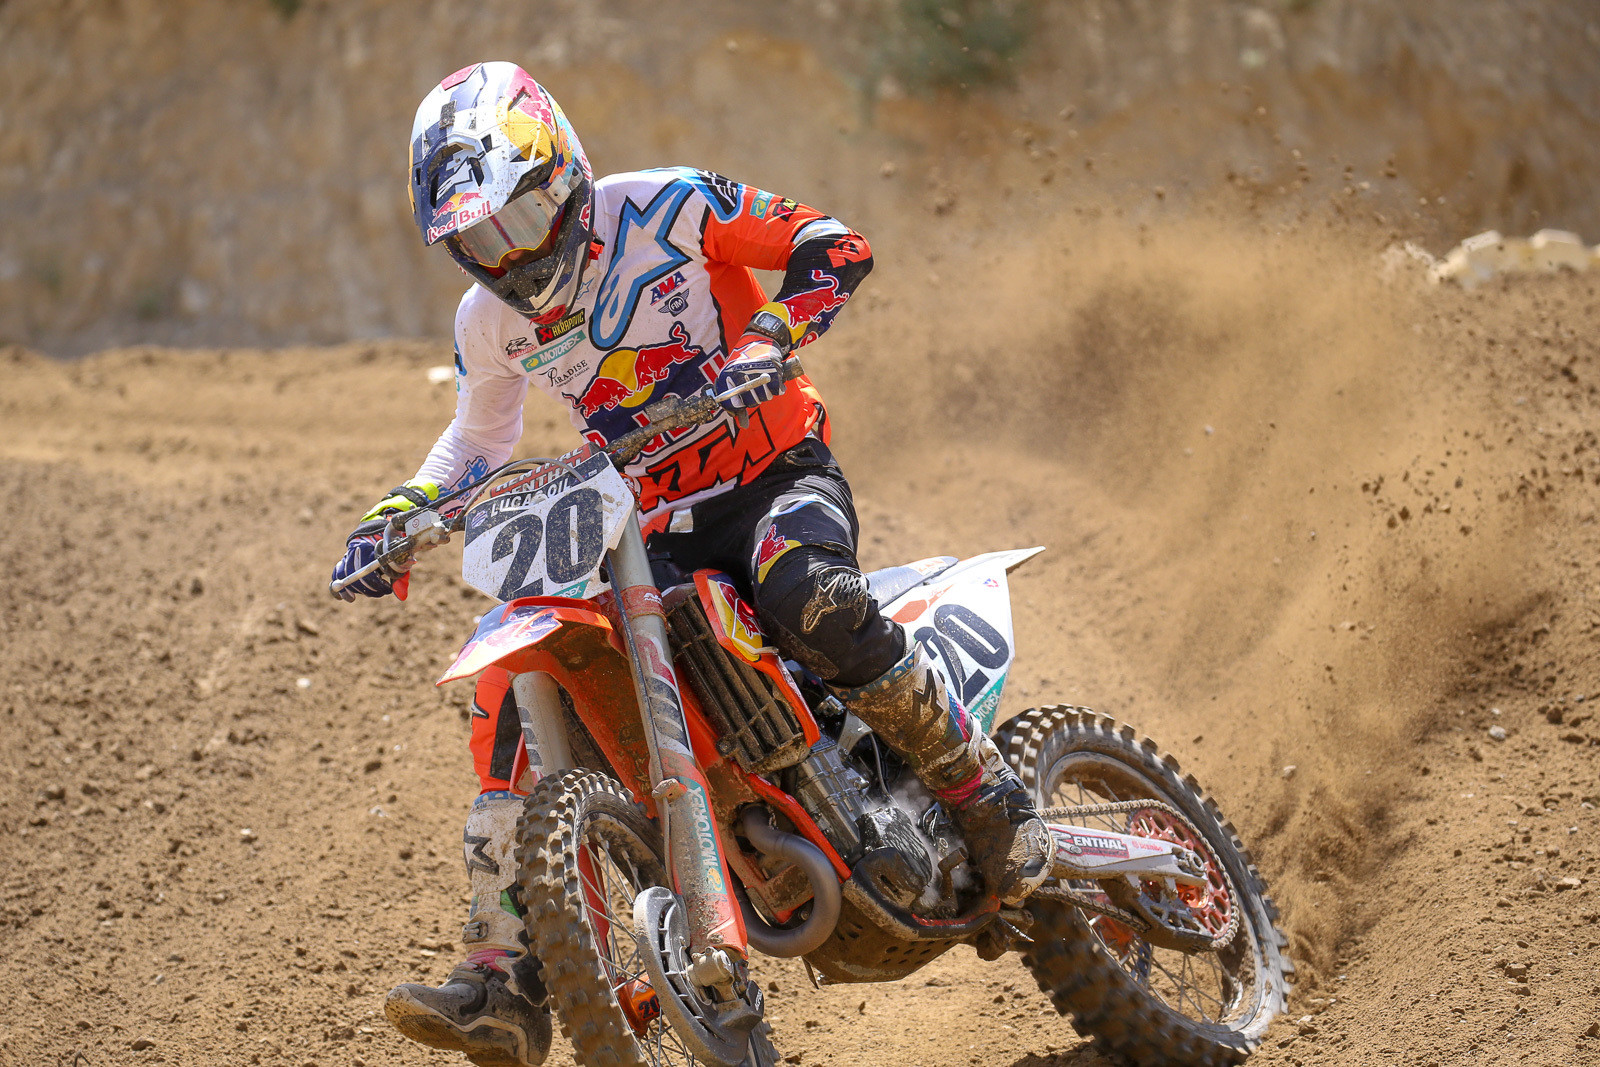 Broc Tickle was putting in laps and waiting on results for his B sample from San Diego. The bad news is, that one came back with the same result, and now he'll have to have a hearing to determine his penalty. We also got a press release today that Red Bull KTM has dropped him from the squad.